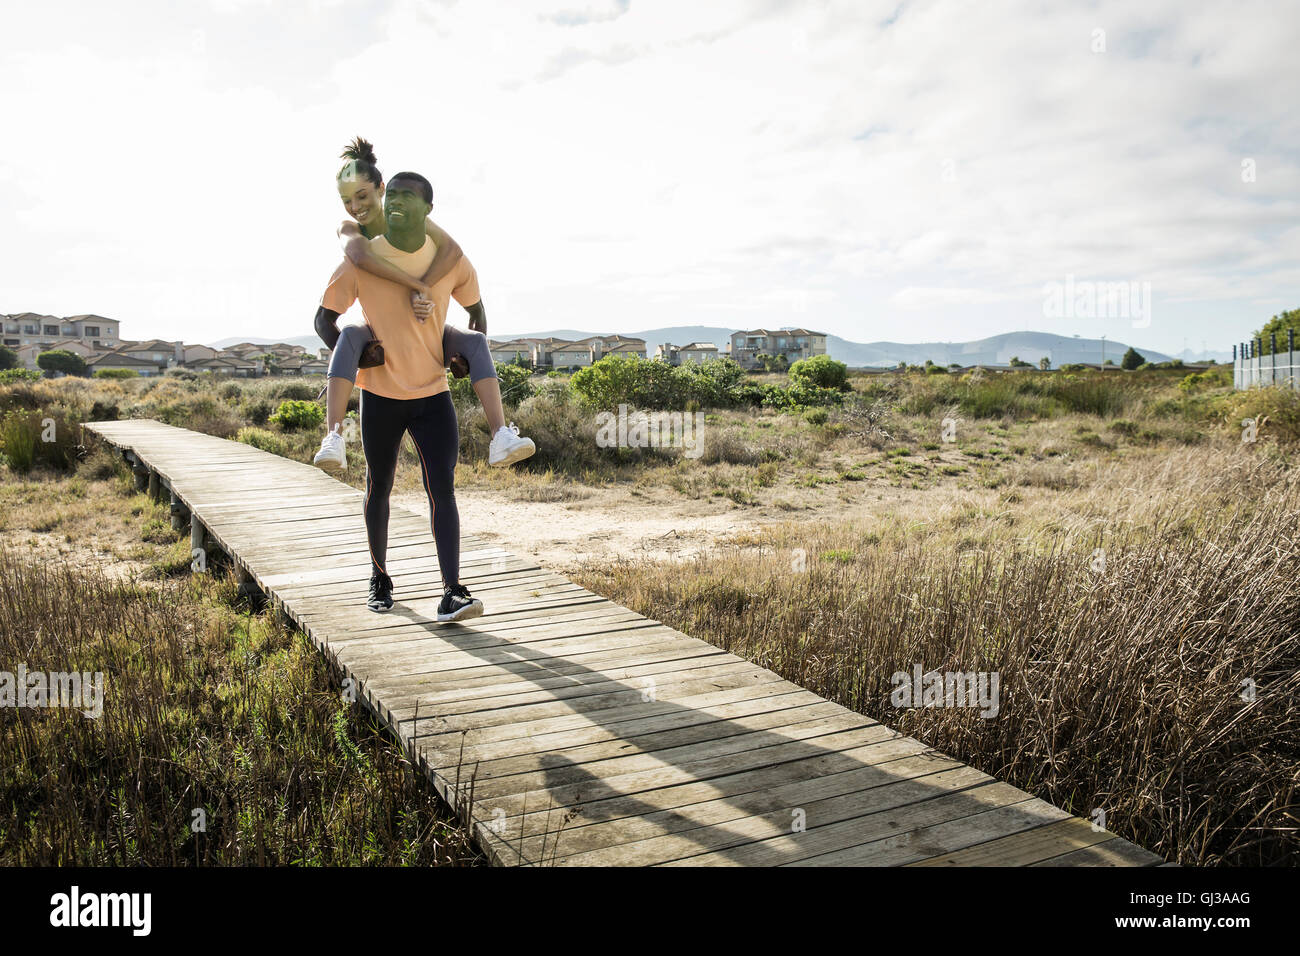 Man giving friend piggyback on wooden walkway - Stock Image